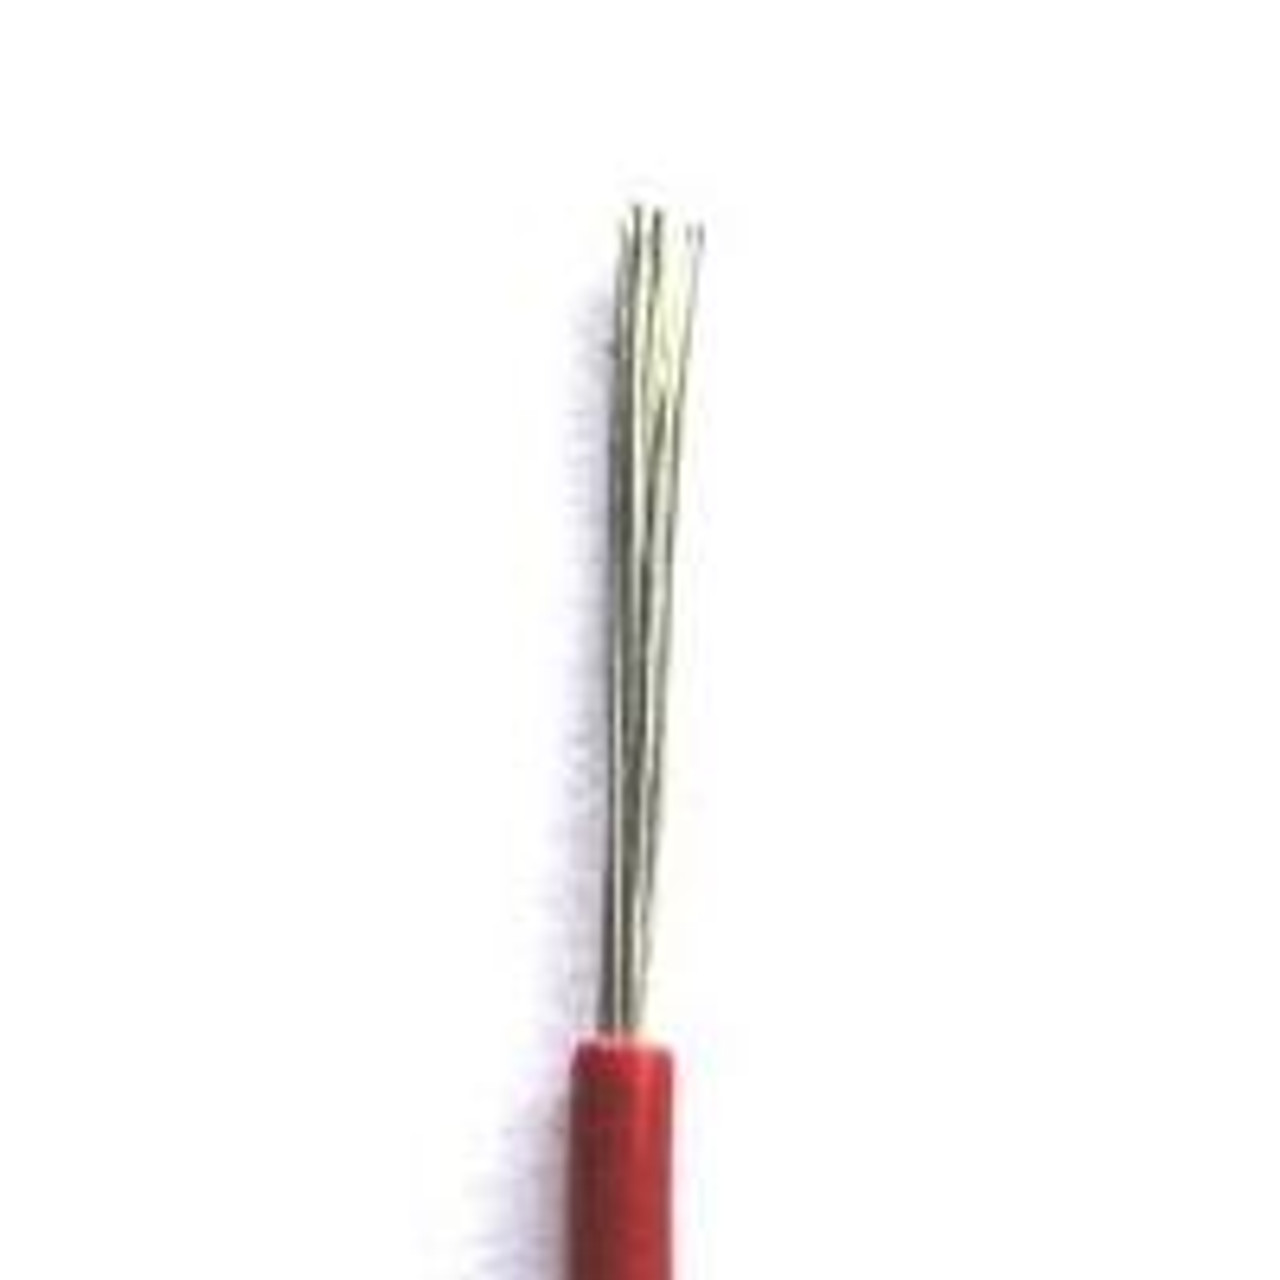 Stranded 22 Gauge Guitar Circuit Wire-Red